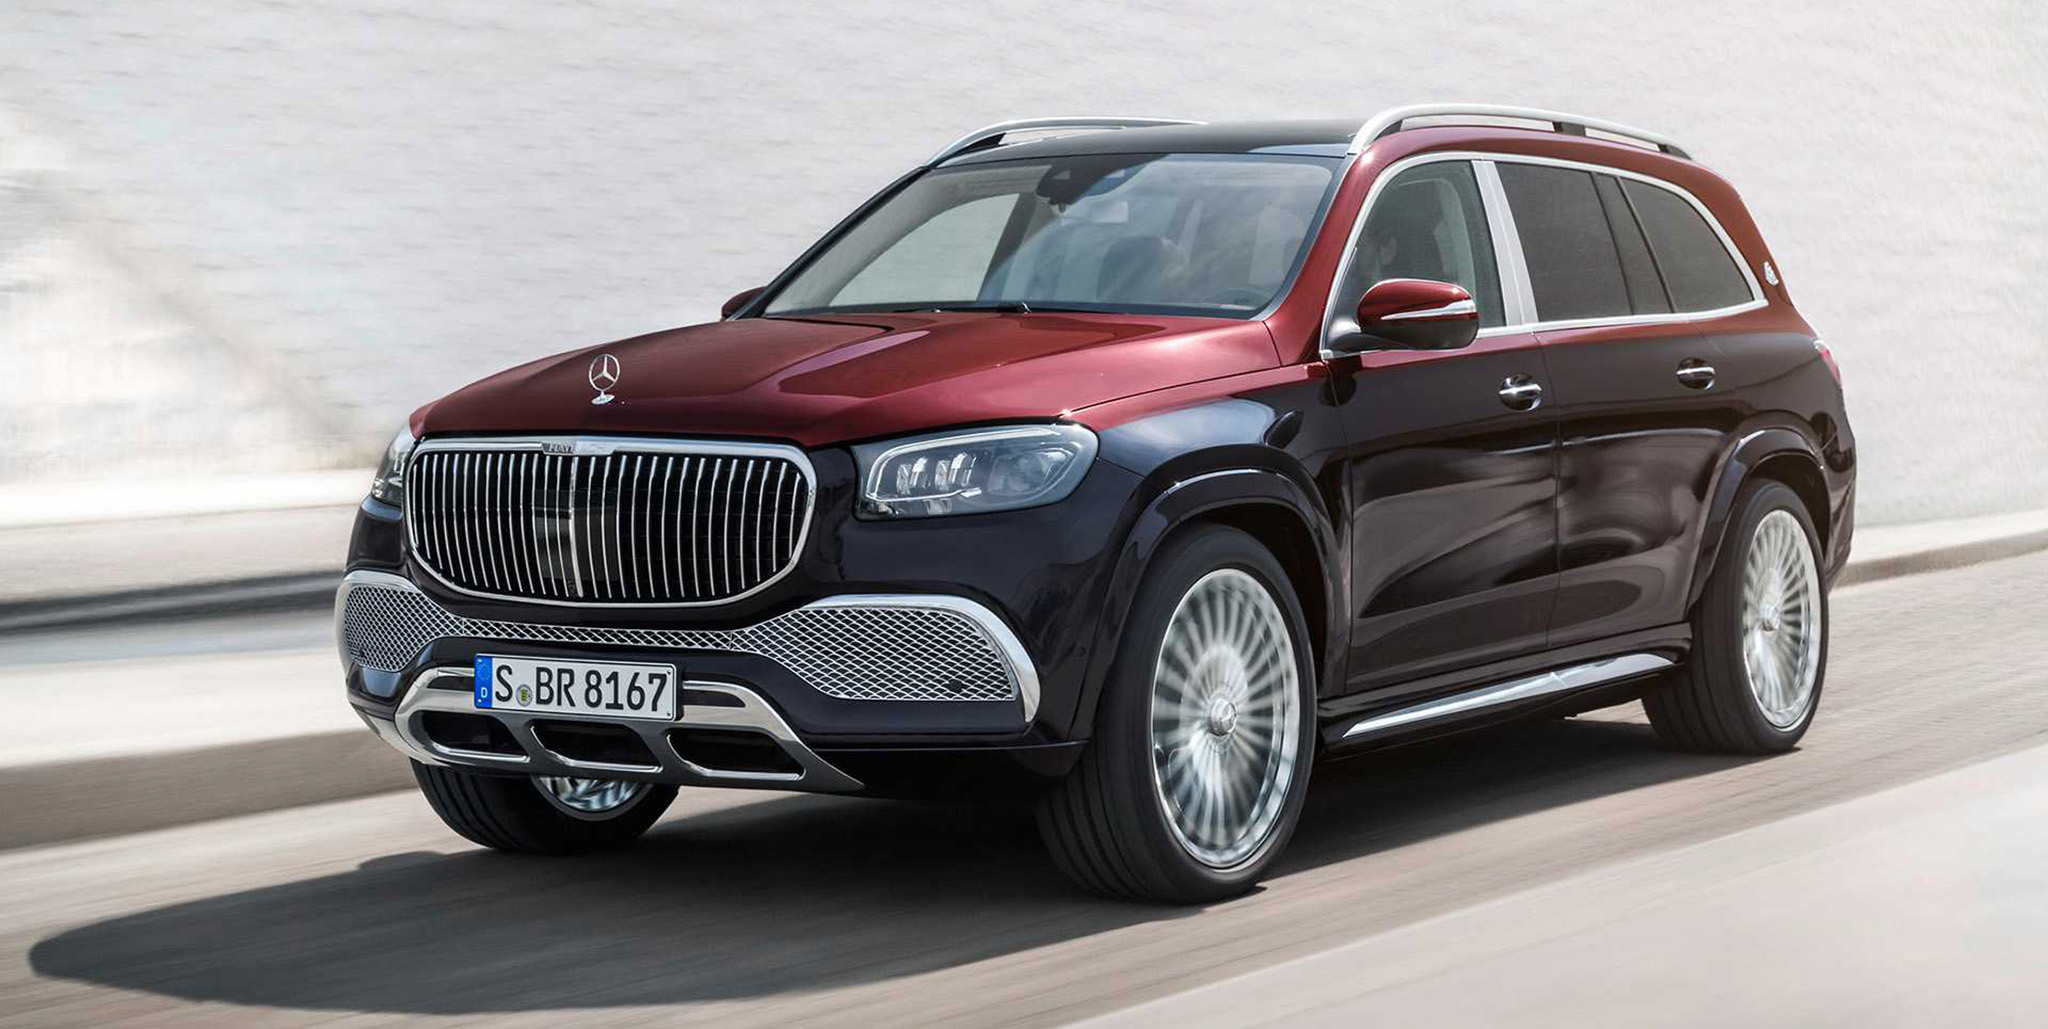 mercedes-maybach-gls-2020-3.jpg